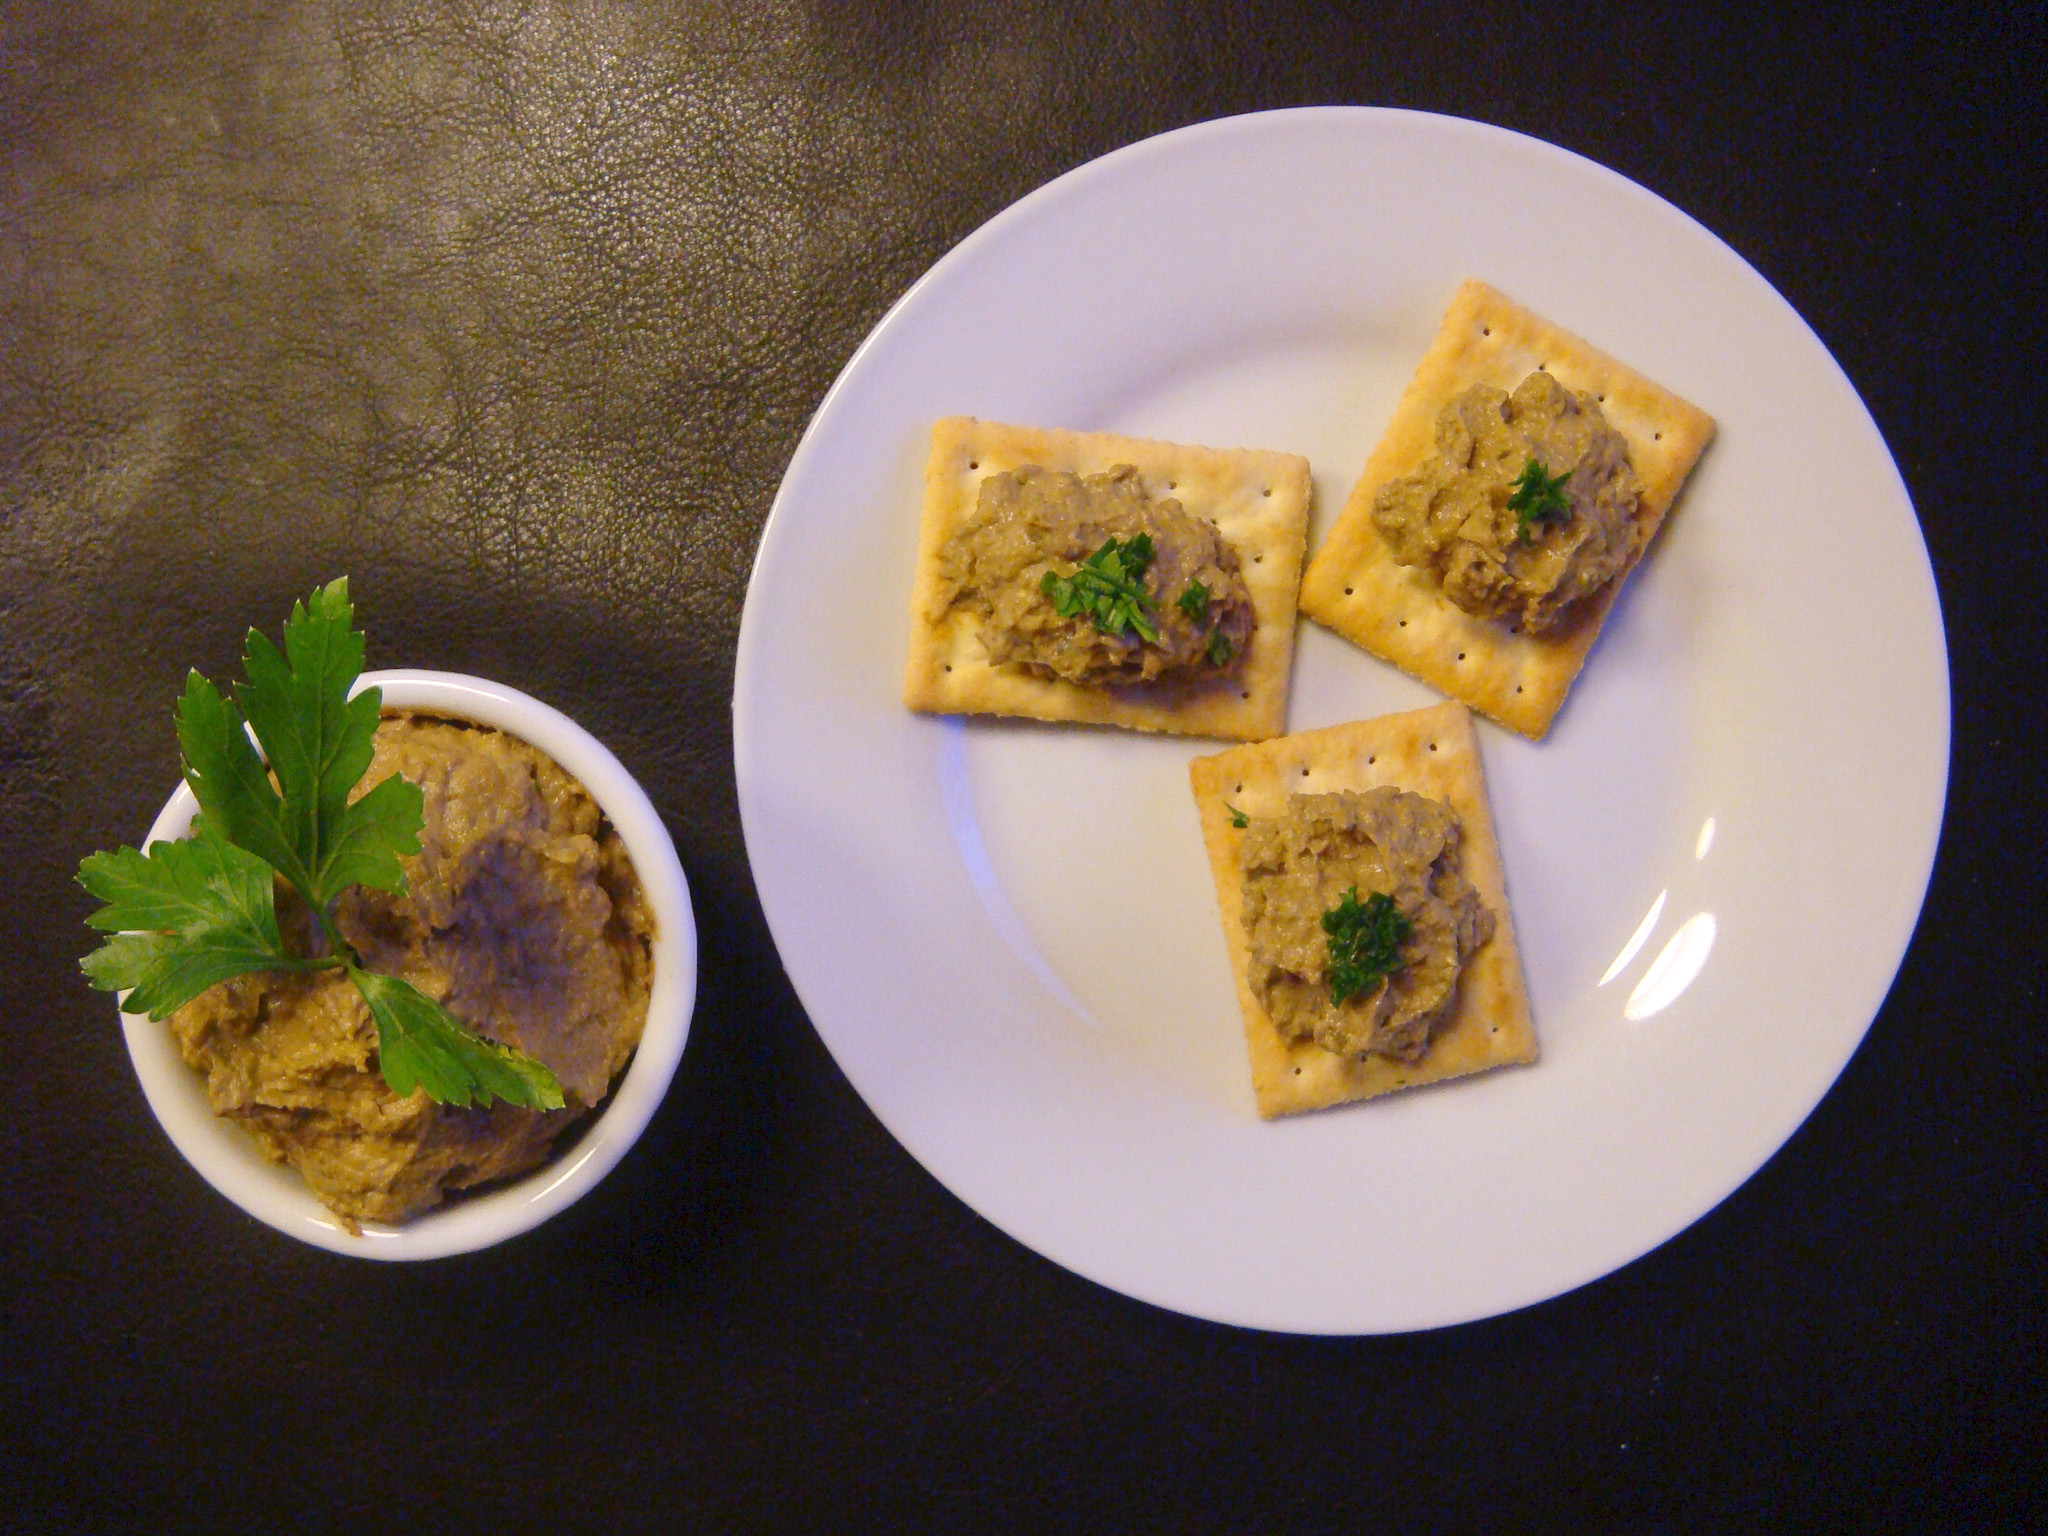 Beef liver pâté with crackers and a hint of parsley